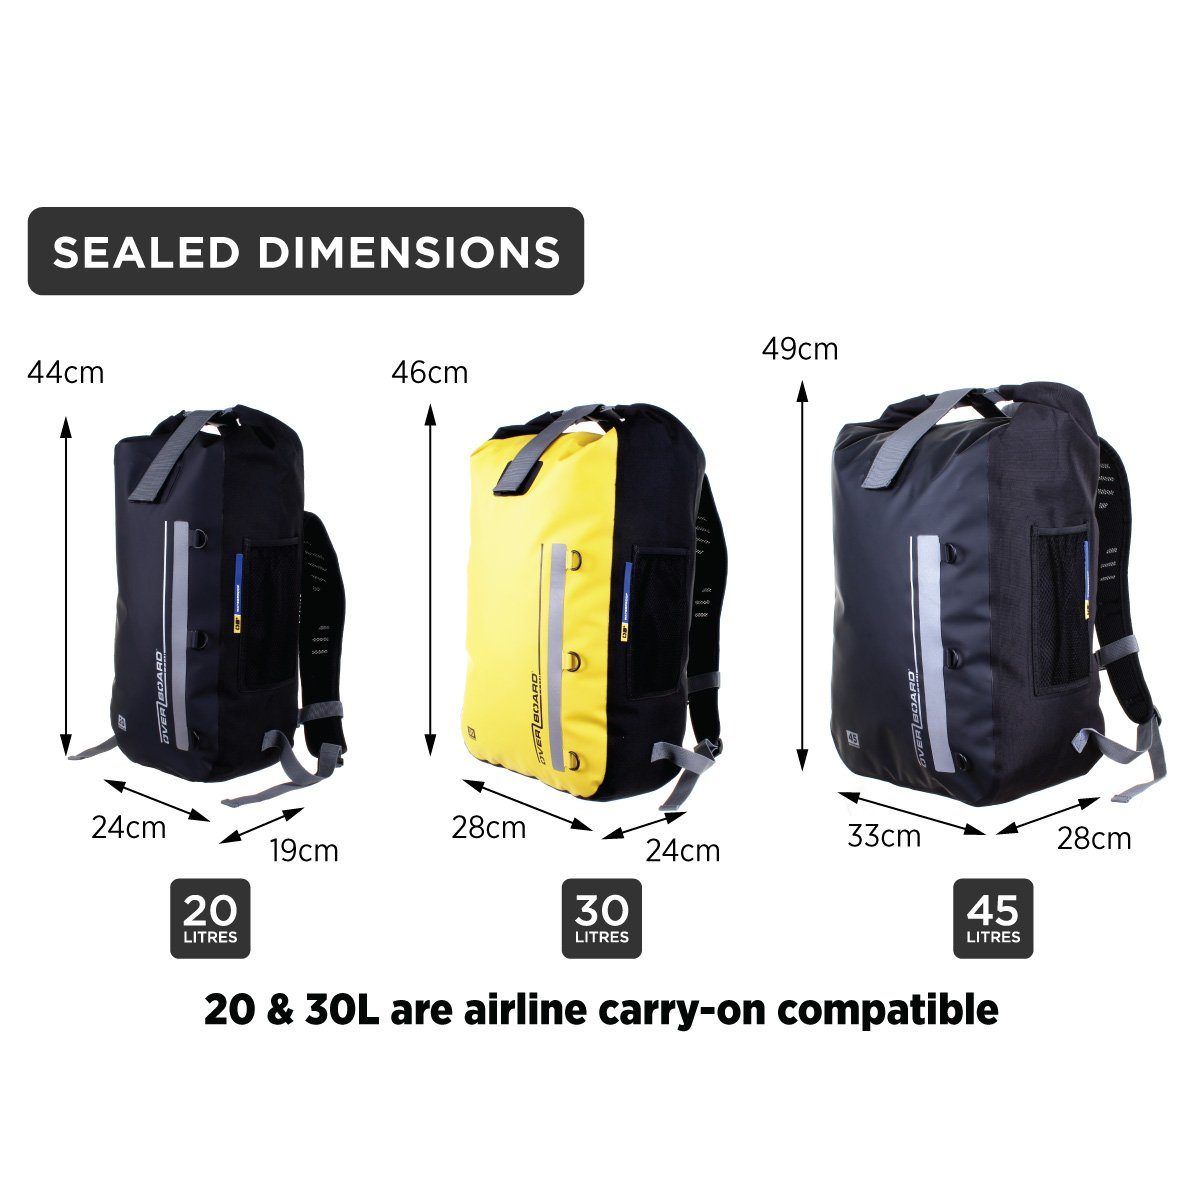 b8656ec85a8 Amazon.com   Overboard Classic 100% Waterproof Backpack Dry Bag   Sports    Outdoors